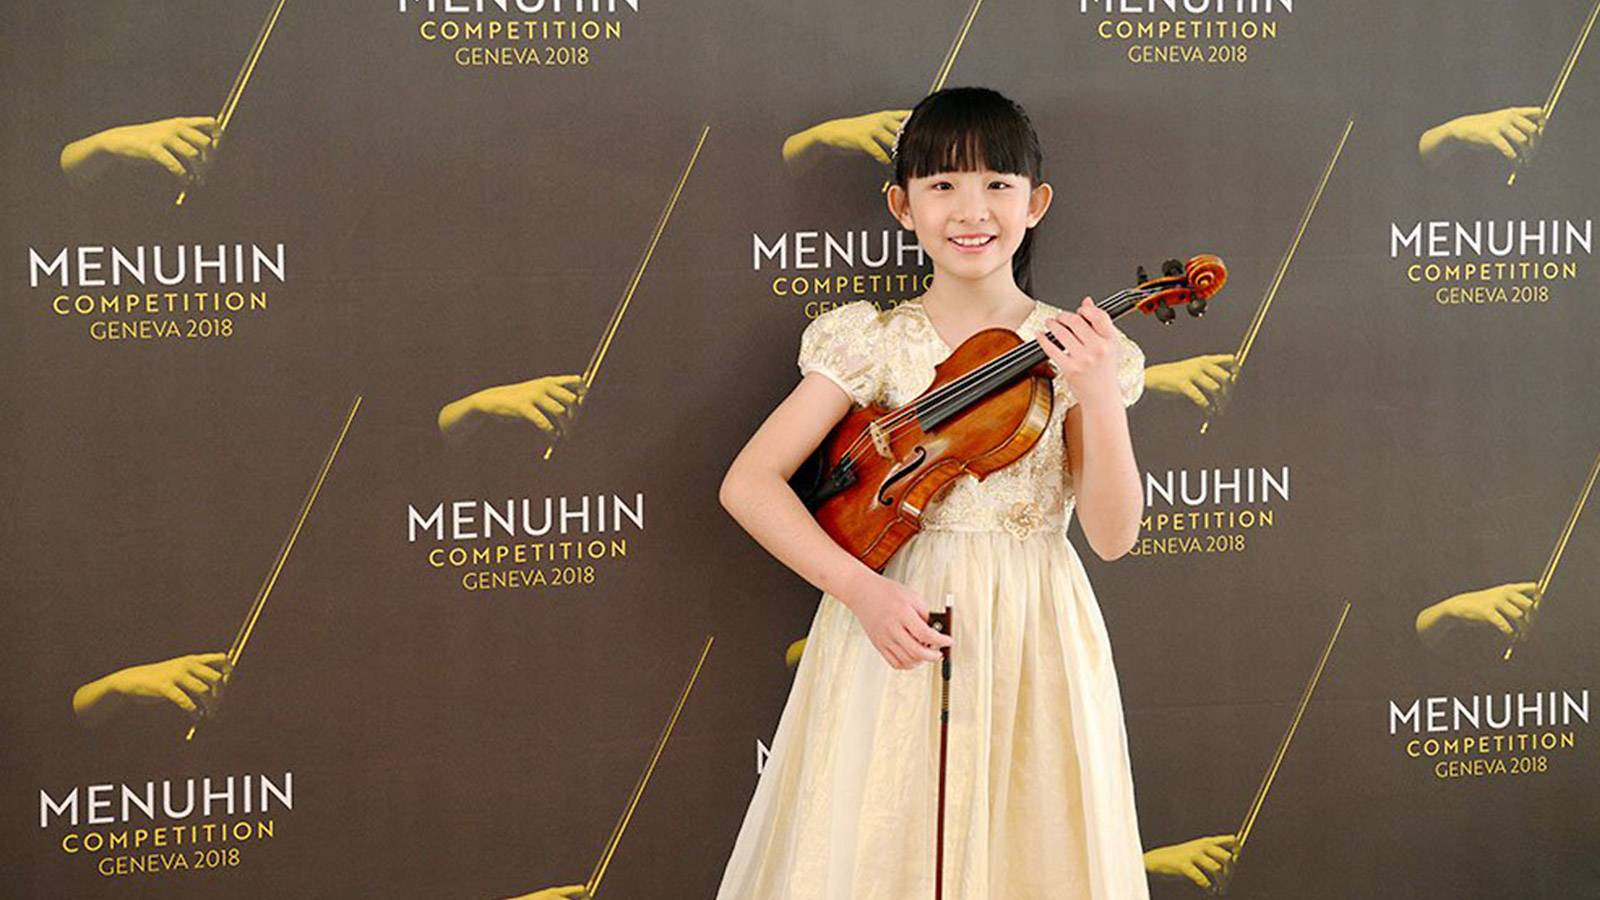 Kids-CONVERSATIONS-WITH-An-Award-Winning-Violin-Prodigy-MAIN